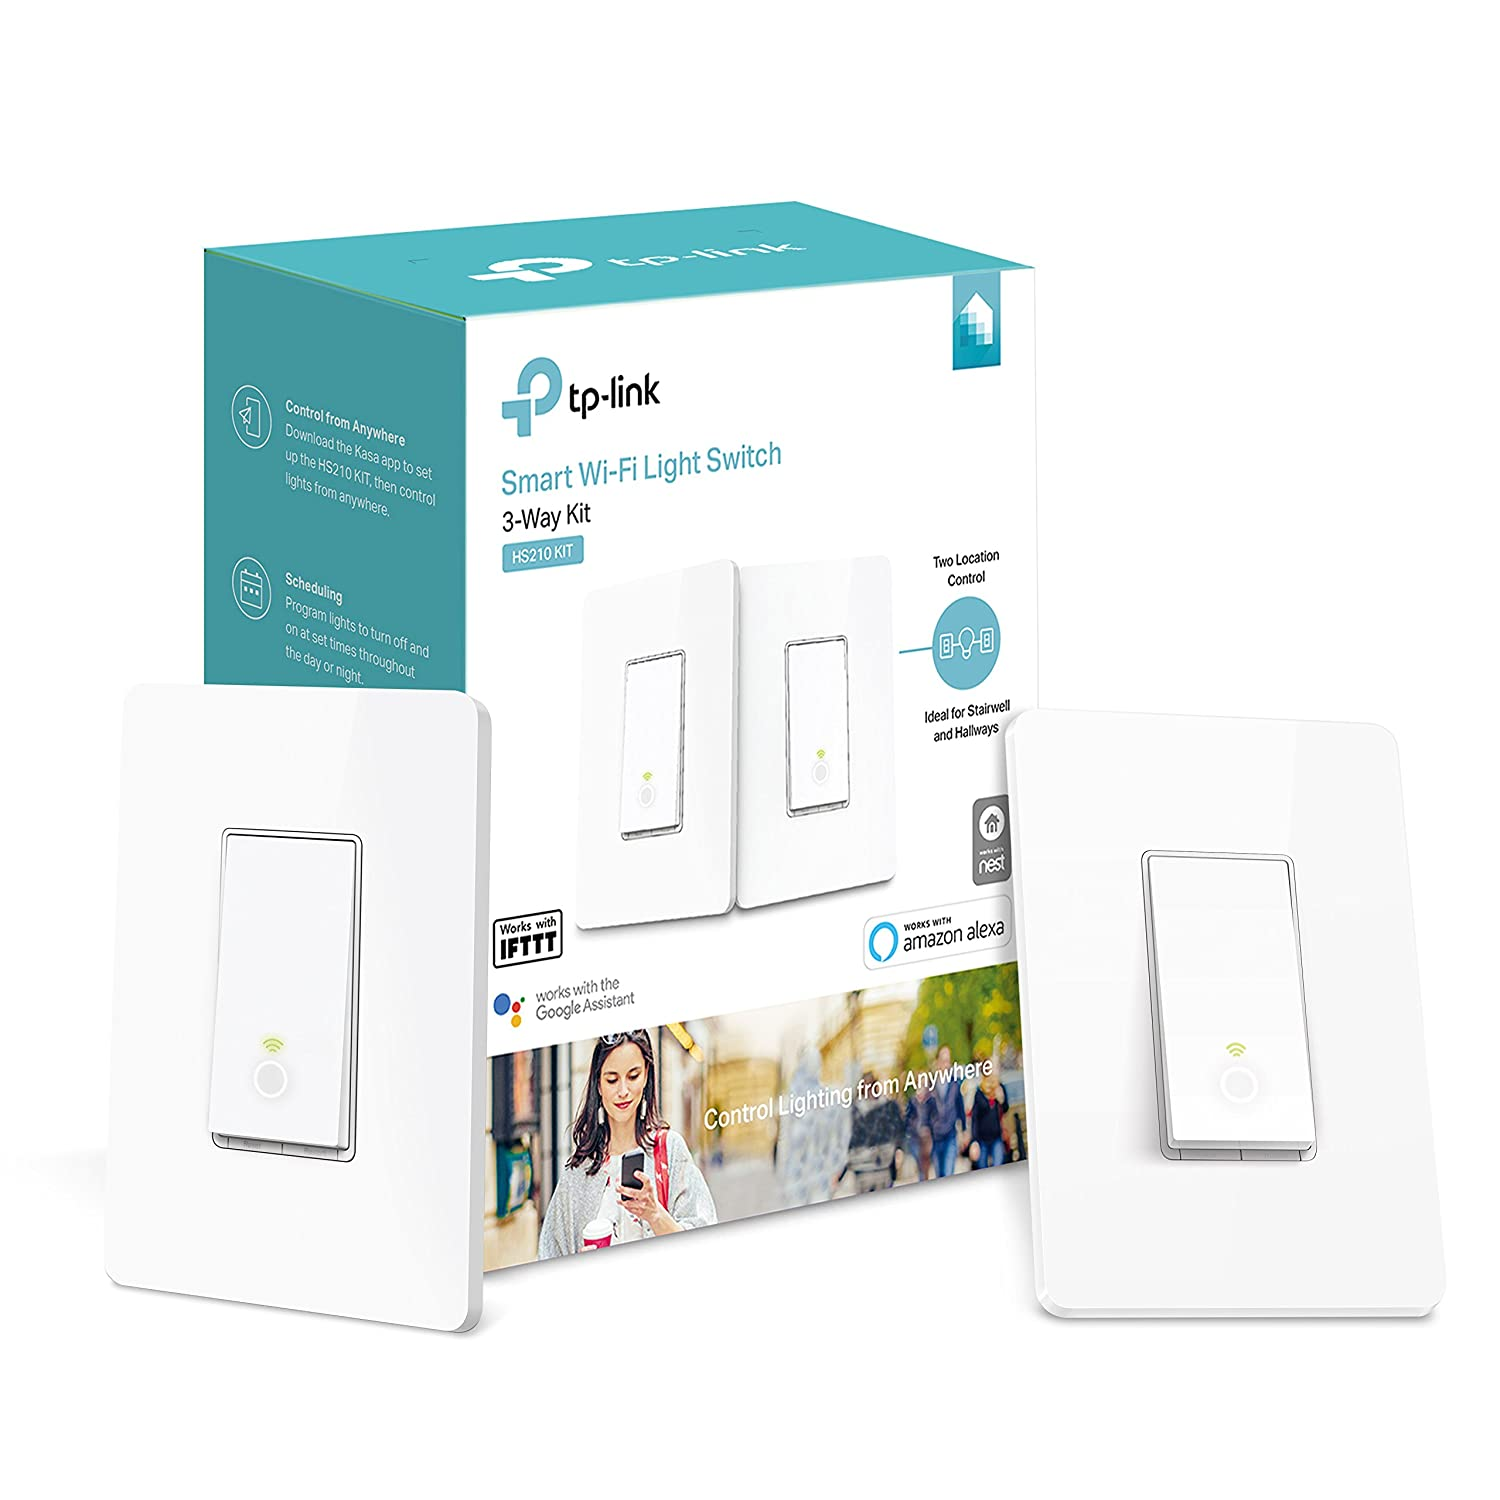 Tp Link Kasa Smart Wi Fi Light Switch 3 Way Hs210 Kit 1 Pack Fire Inc Restaurant System Parts Ansulstyle Dpdt Microswitch White